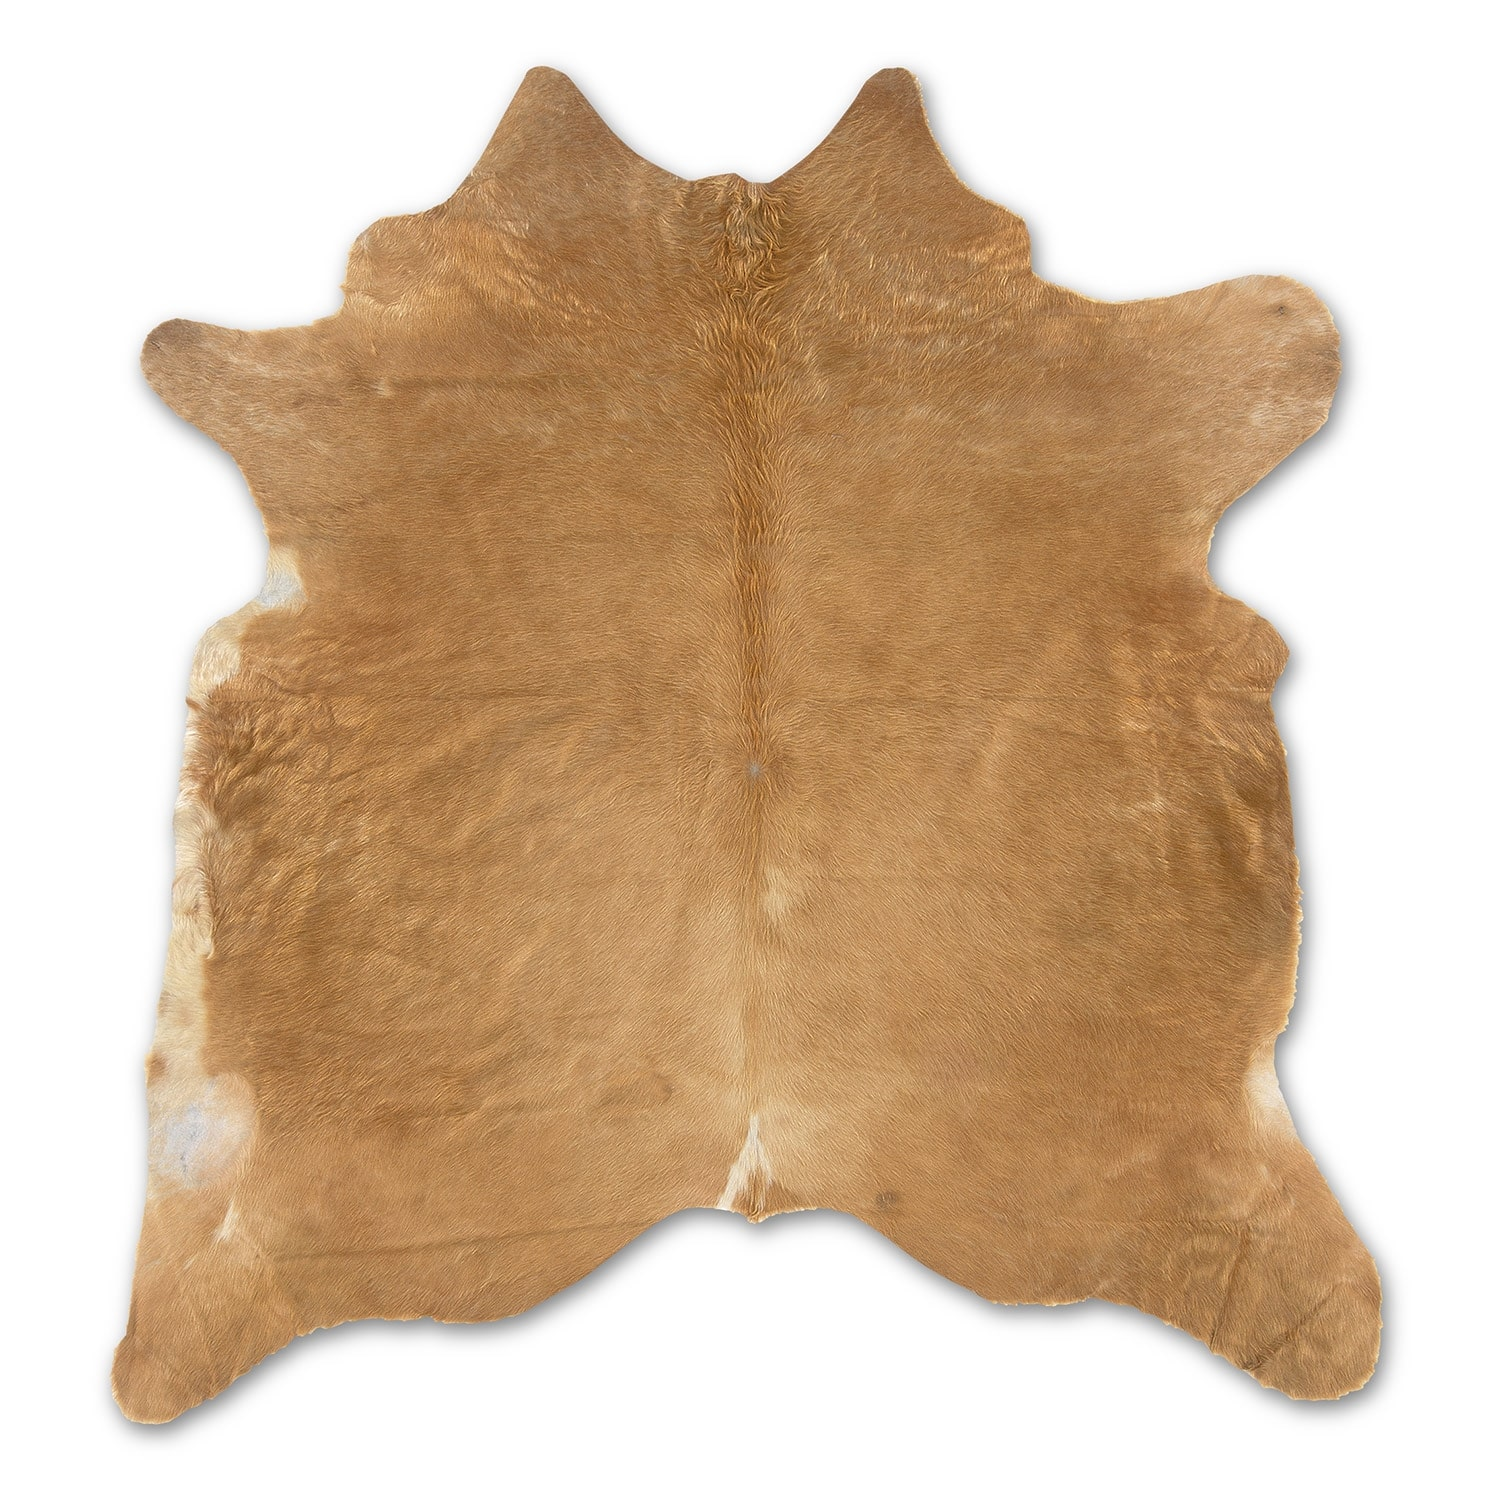 Cowhide Area Rugs Area Rug 5 X 8 Value City Furniture